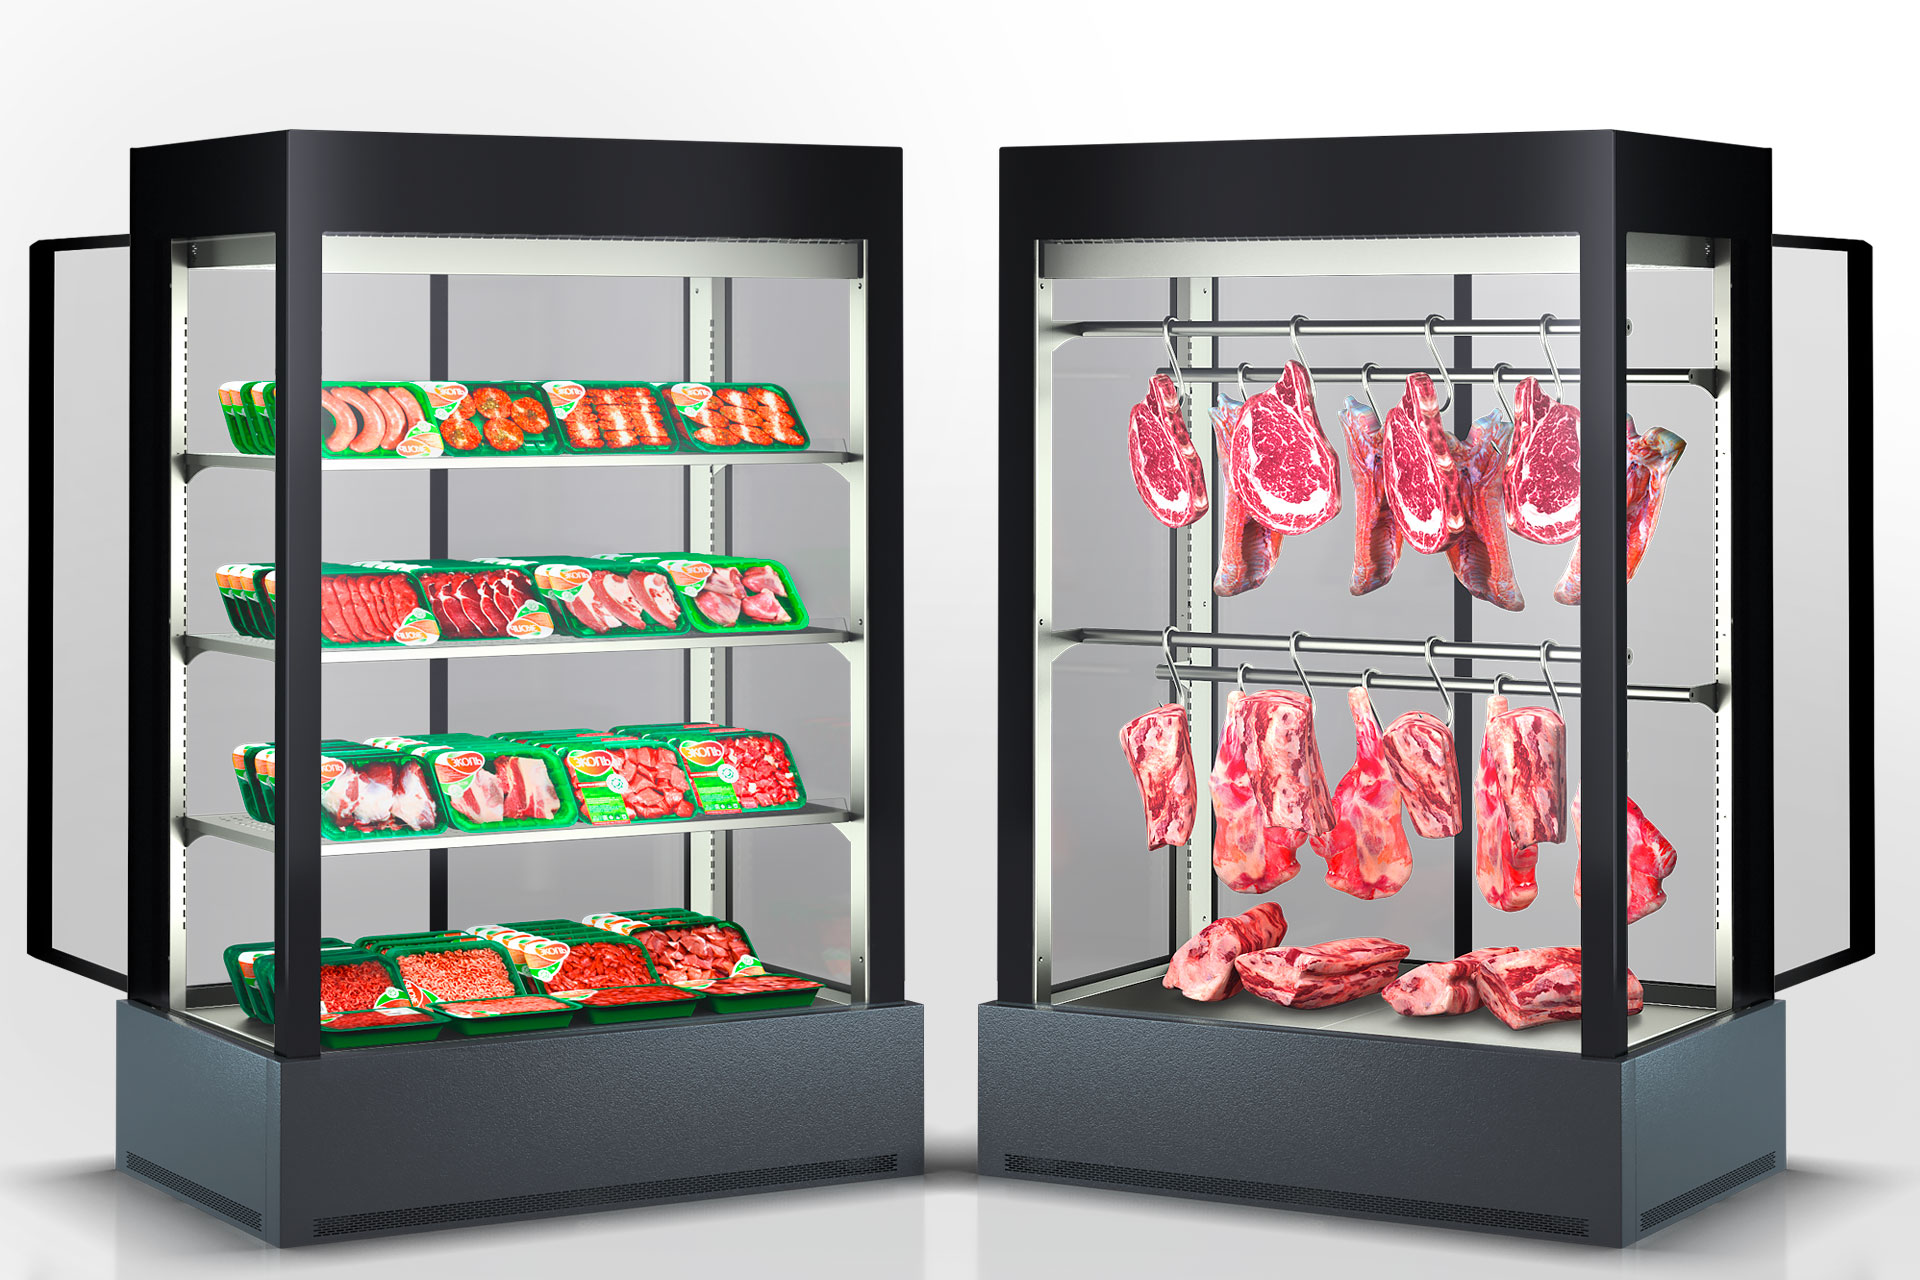 Refrigerated cabinet Kansas А4SG 078 meat 2HD 210-S1000A-135